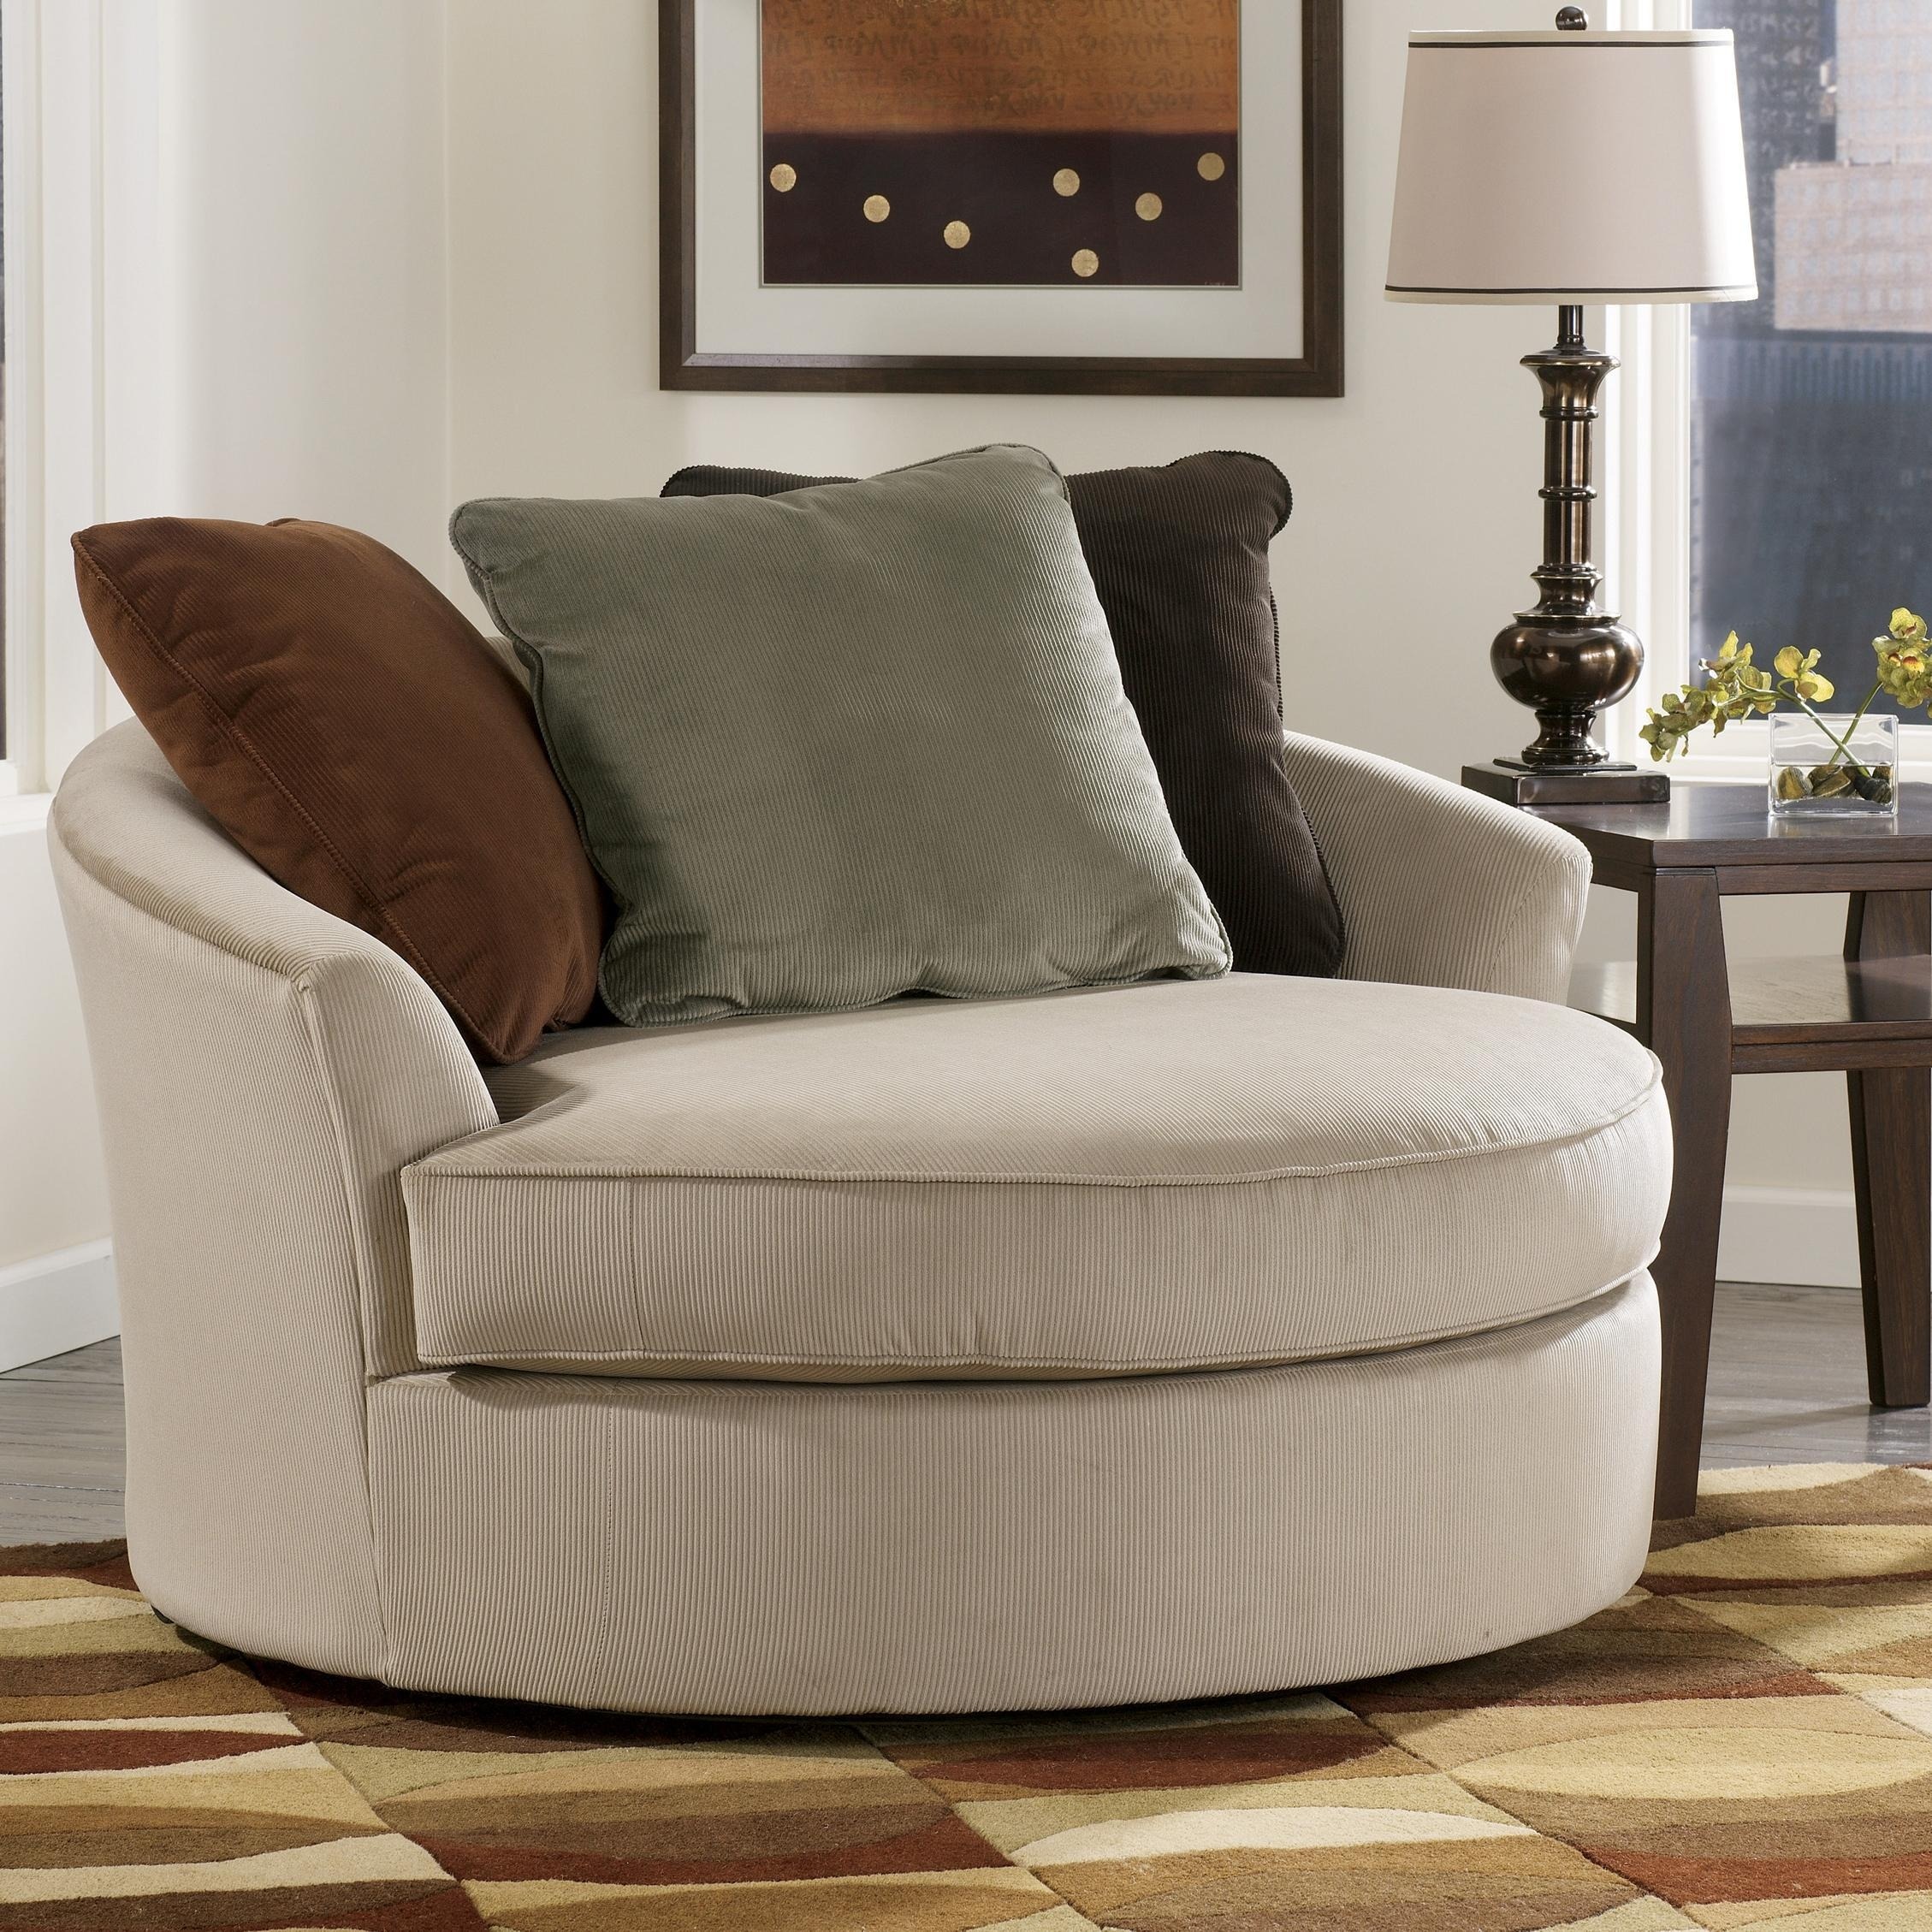 15 Ideas of Round Swivel Sofa Chairs | Sofa Ideas